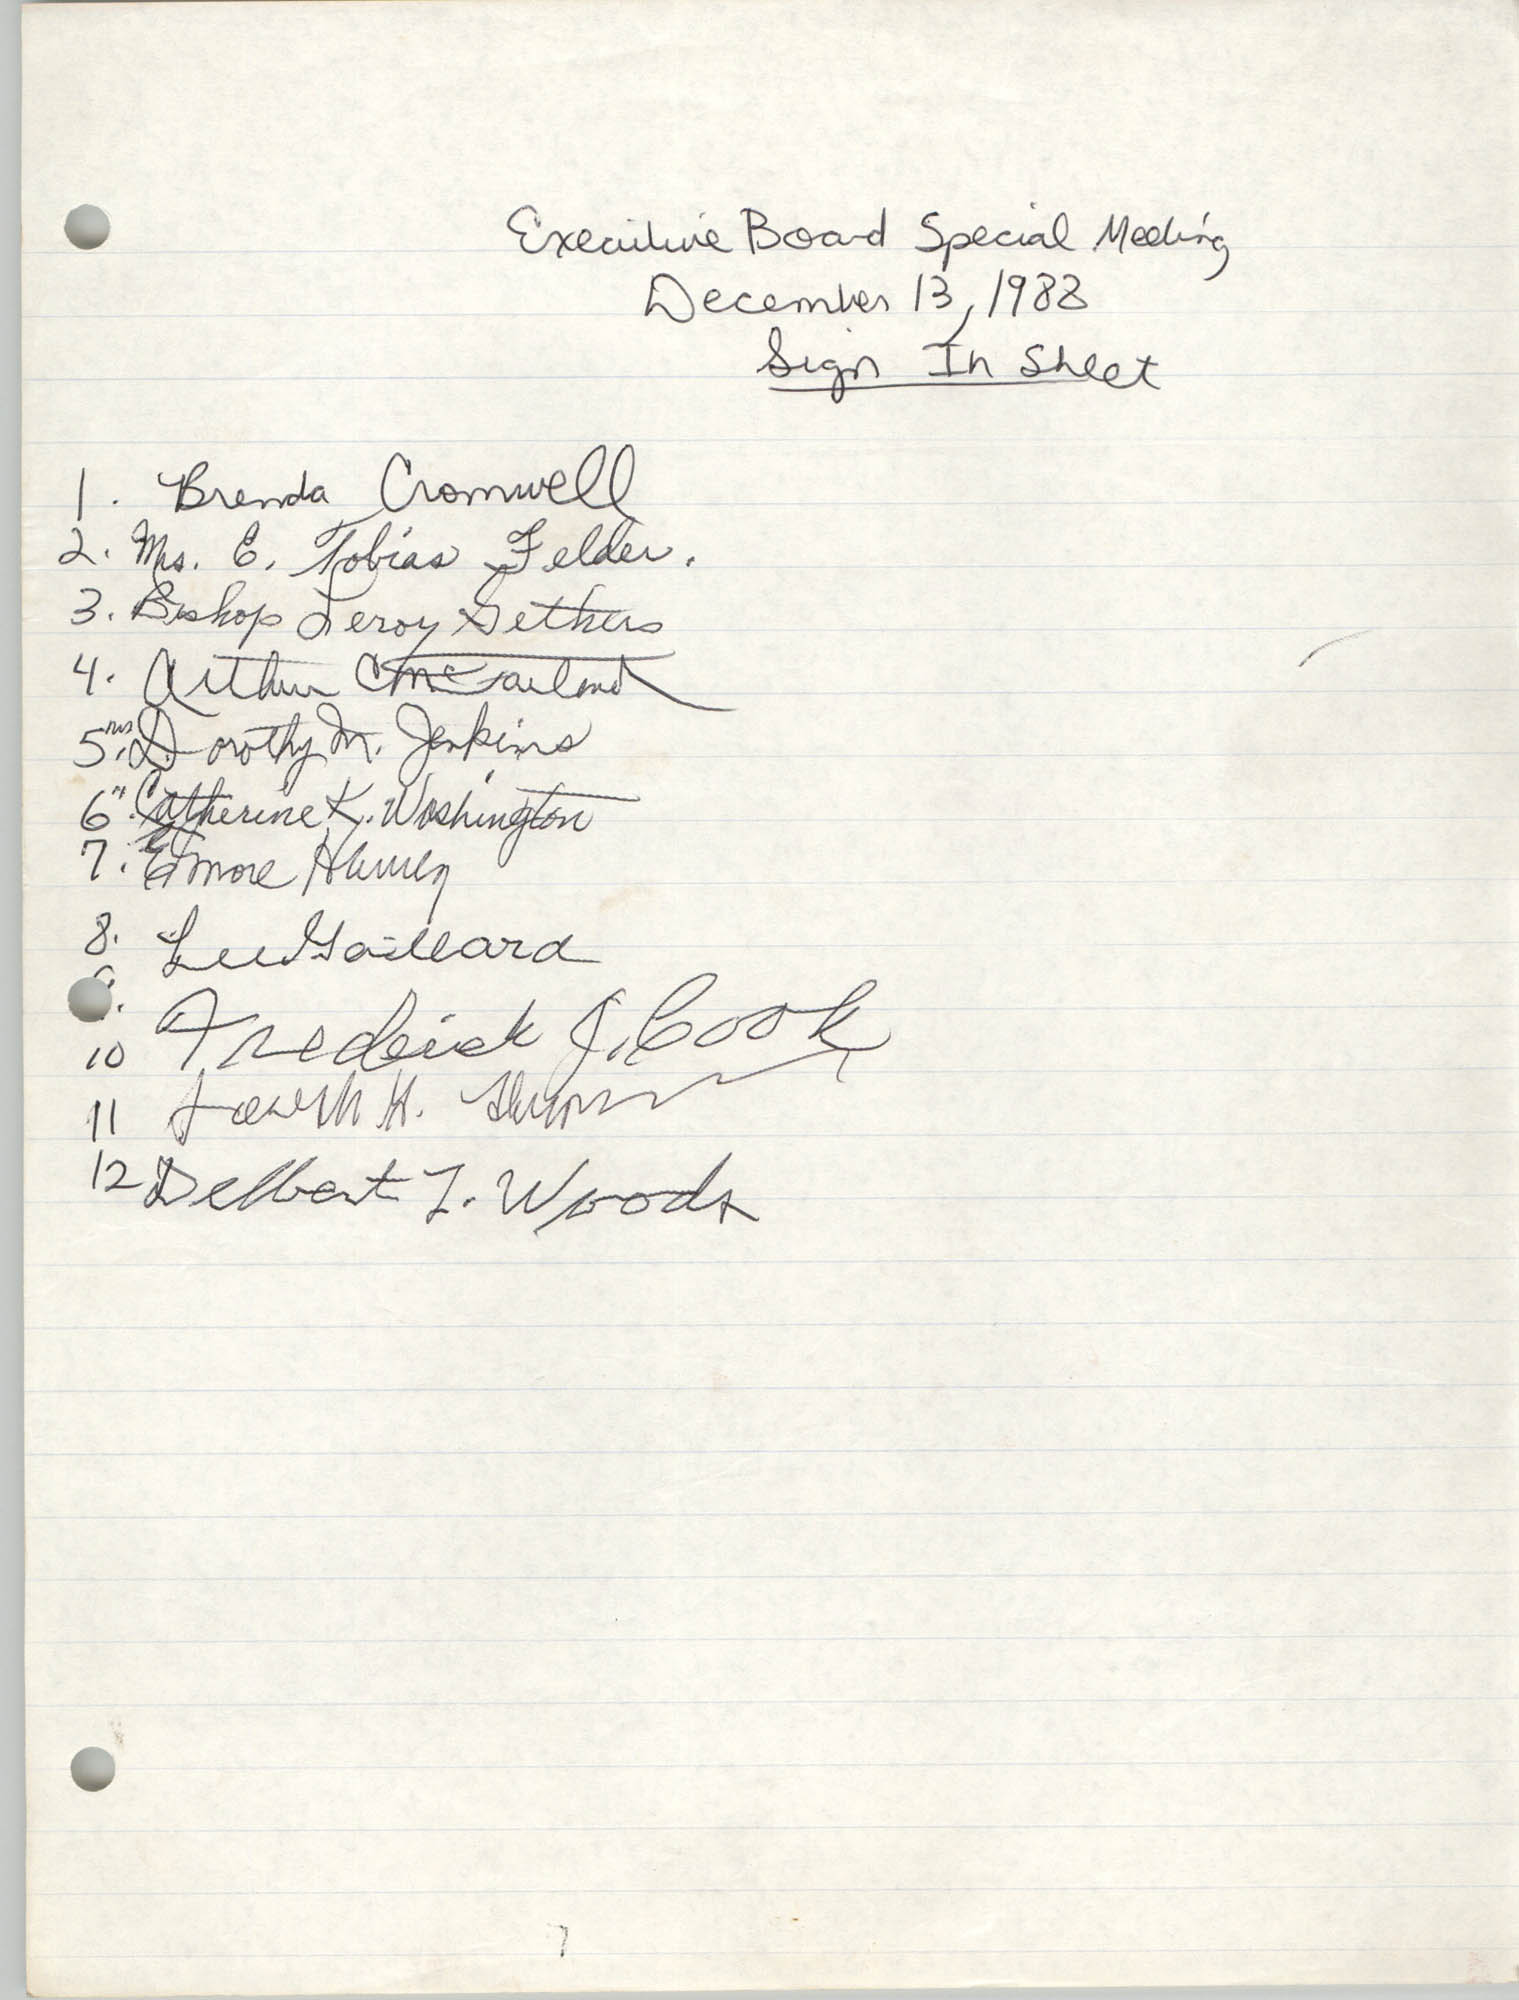 Sign-in Sheet, Charleston Branch of the NAACP, Executive Board Meeting, December 13, 1988